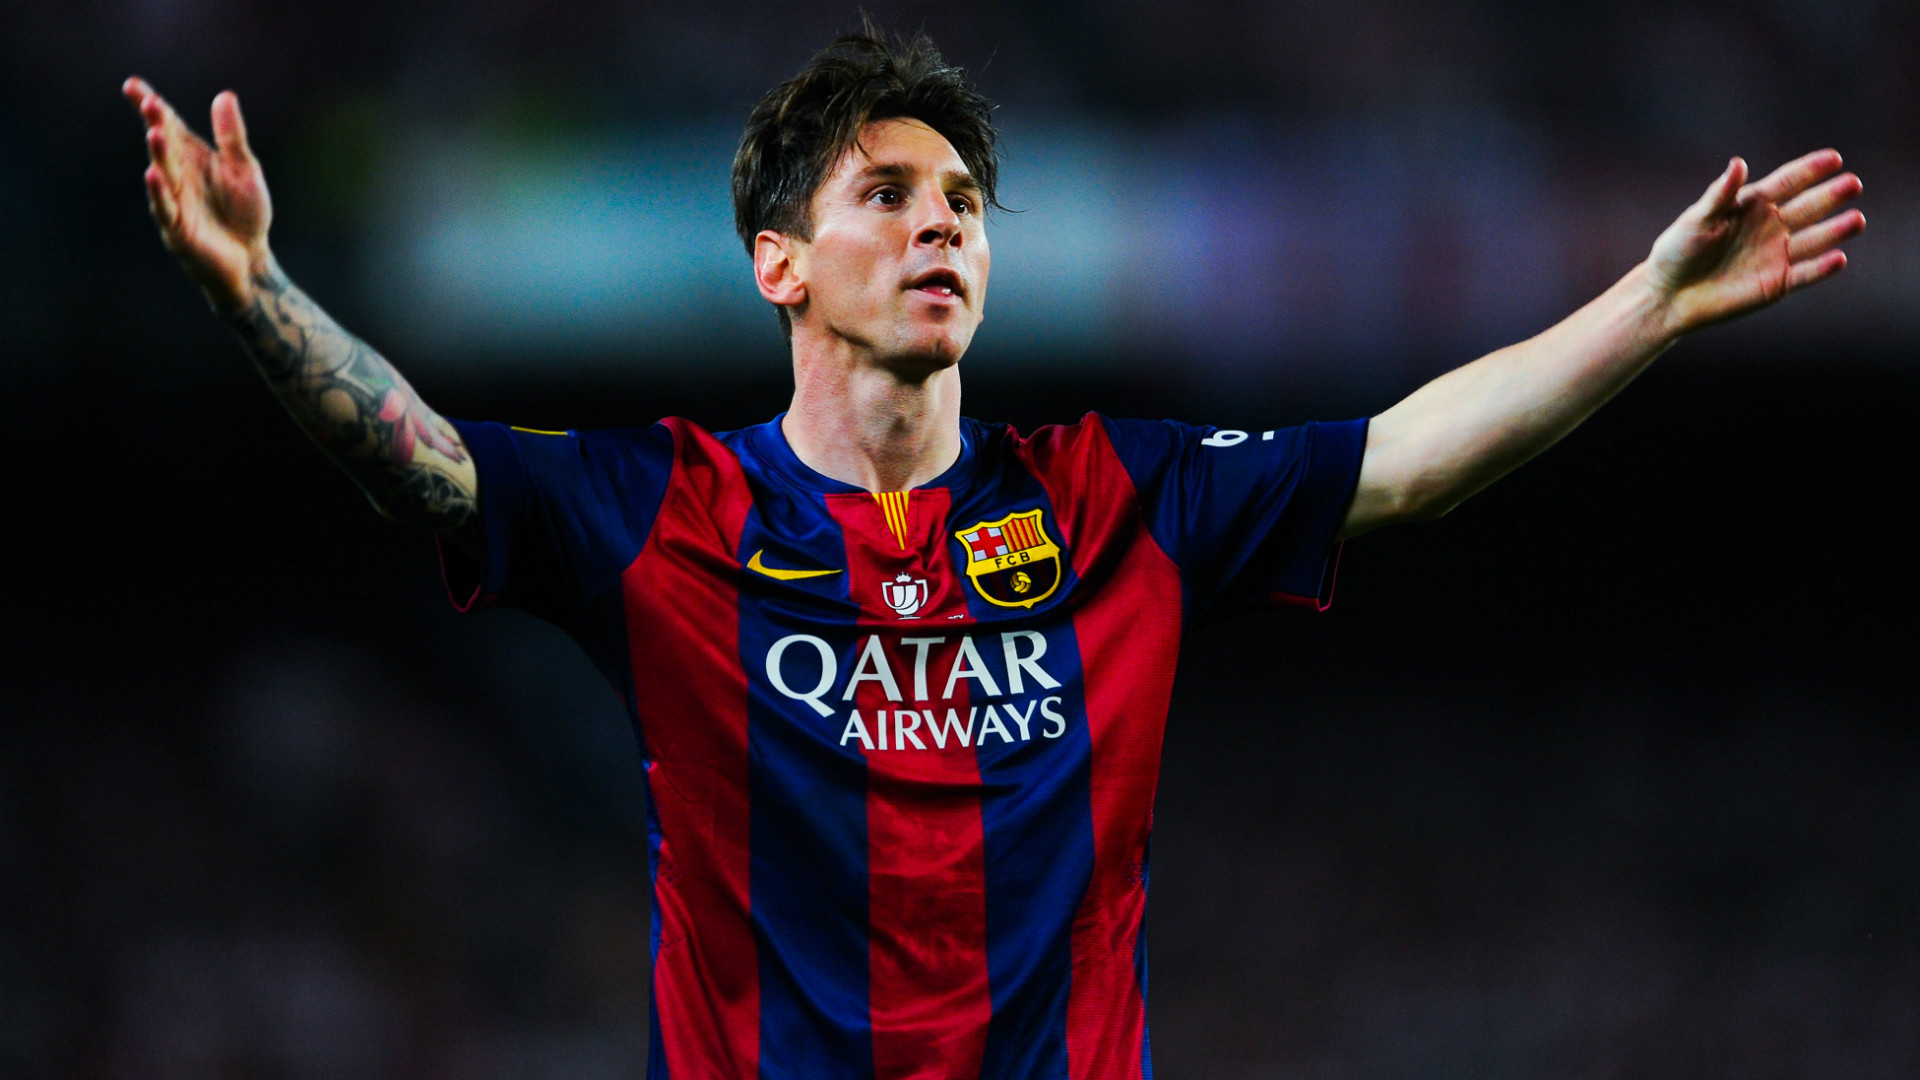 What is Lionel Messi s net worth and how much does the Barcelona